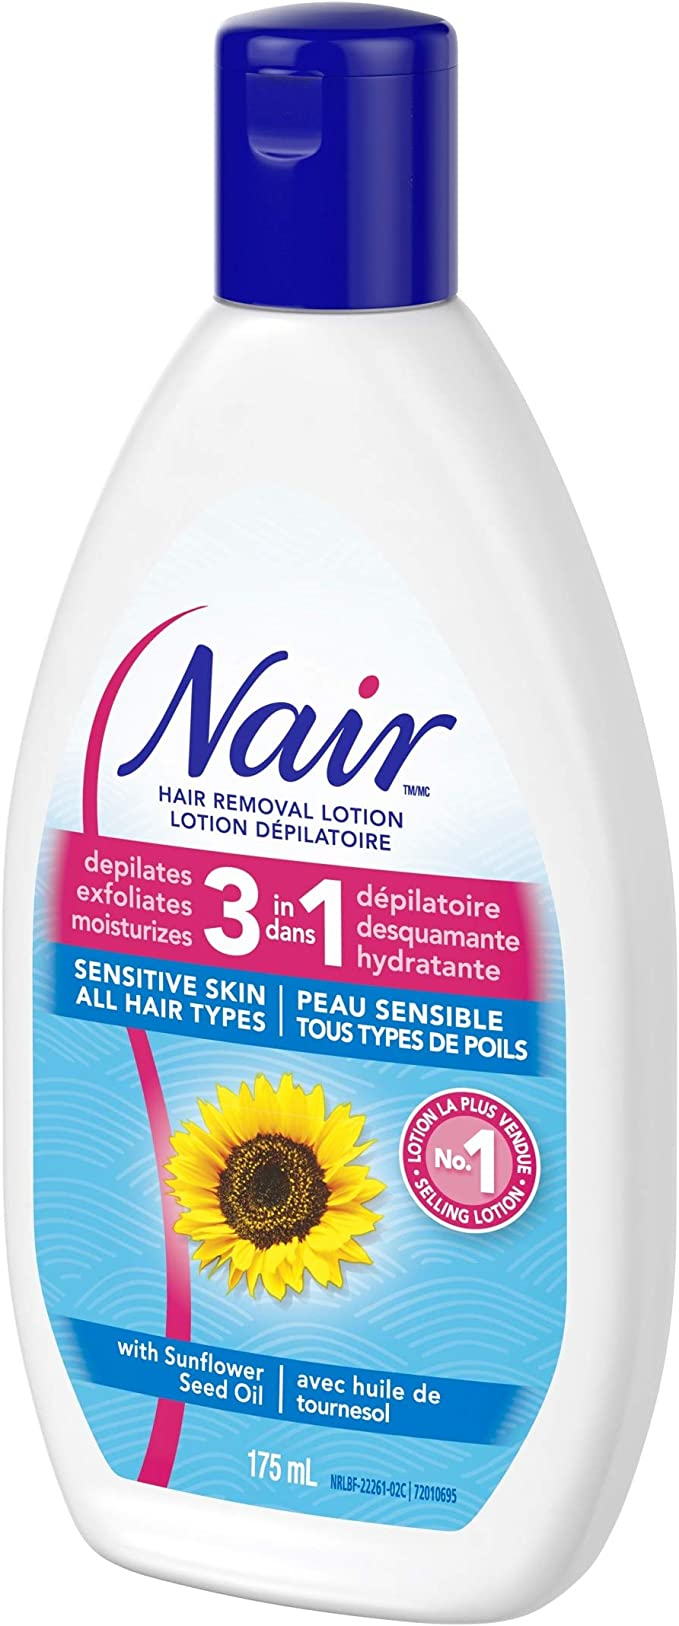 Nair 3 In 1 Hair Removal Lotion For Sensitive Skin With Sunflower